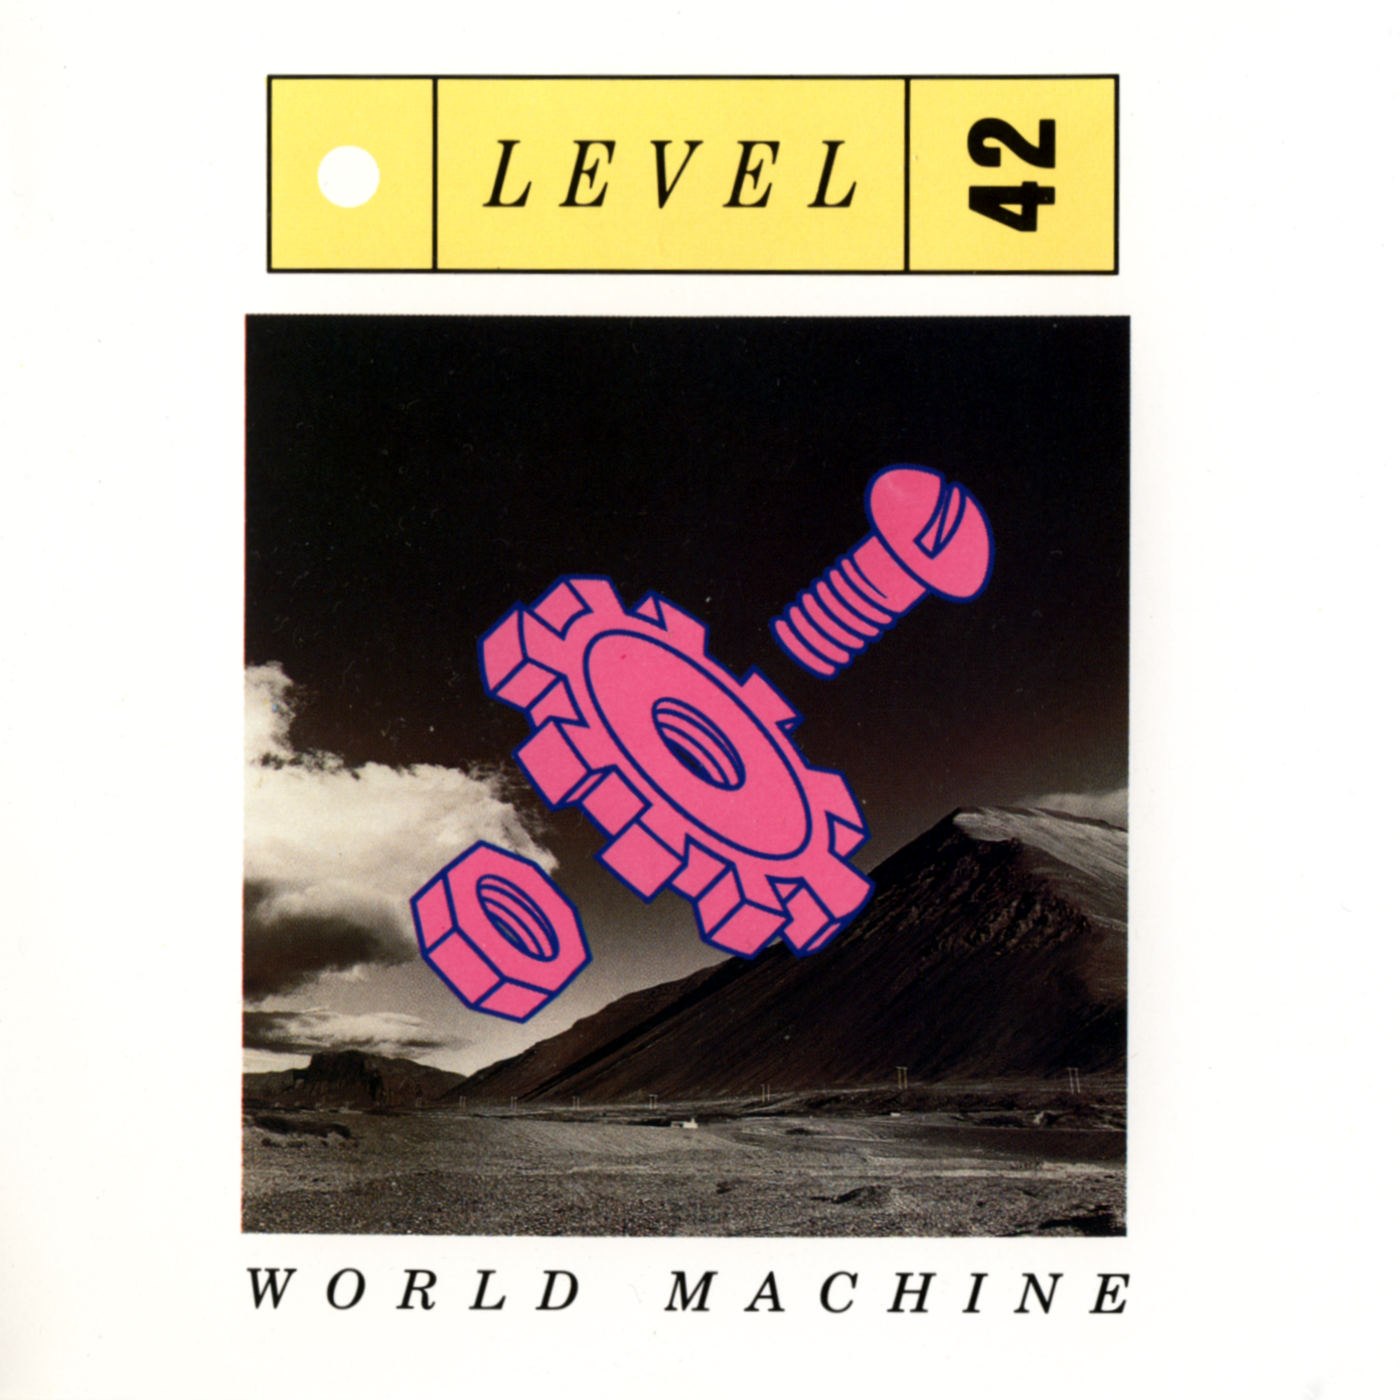 world machine 2 3 7